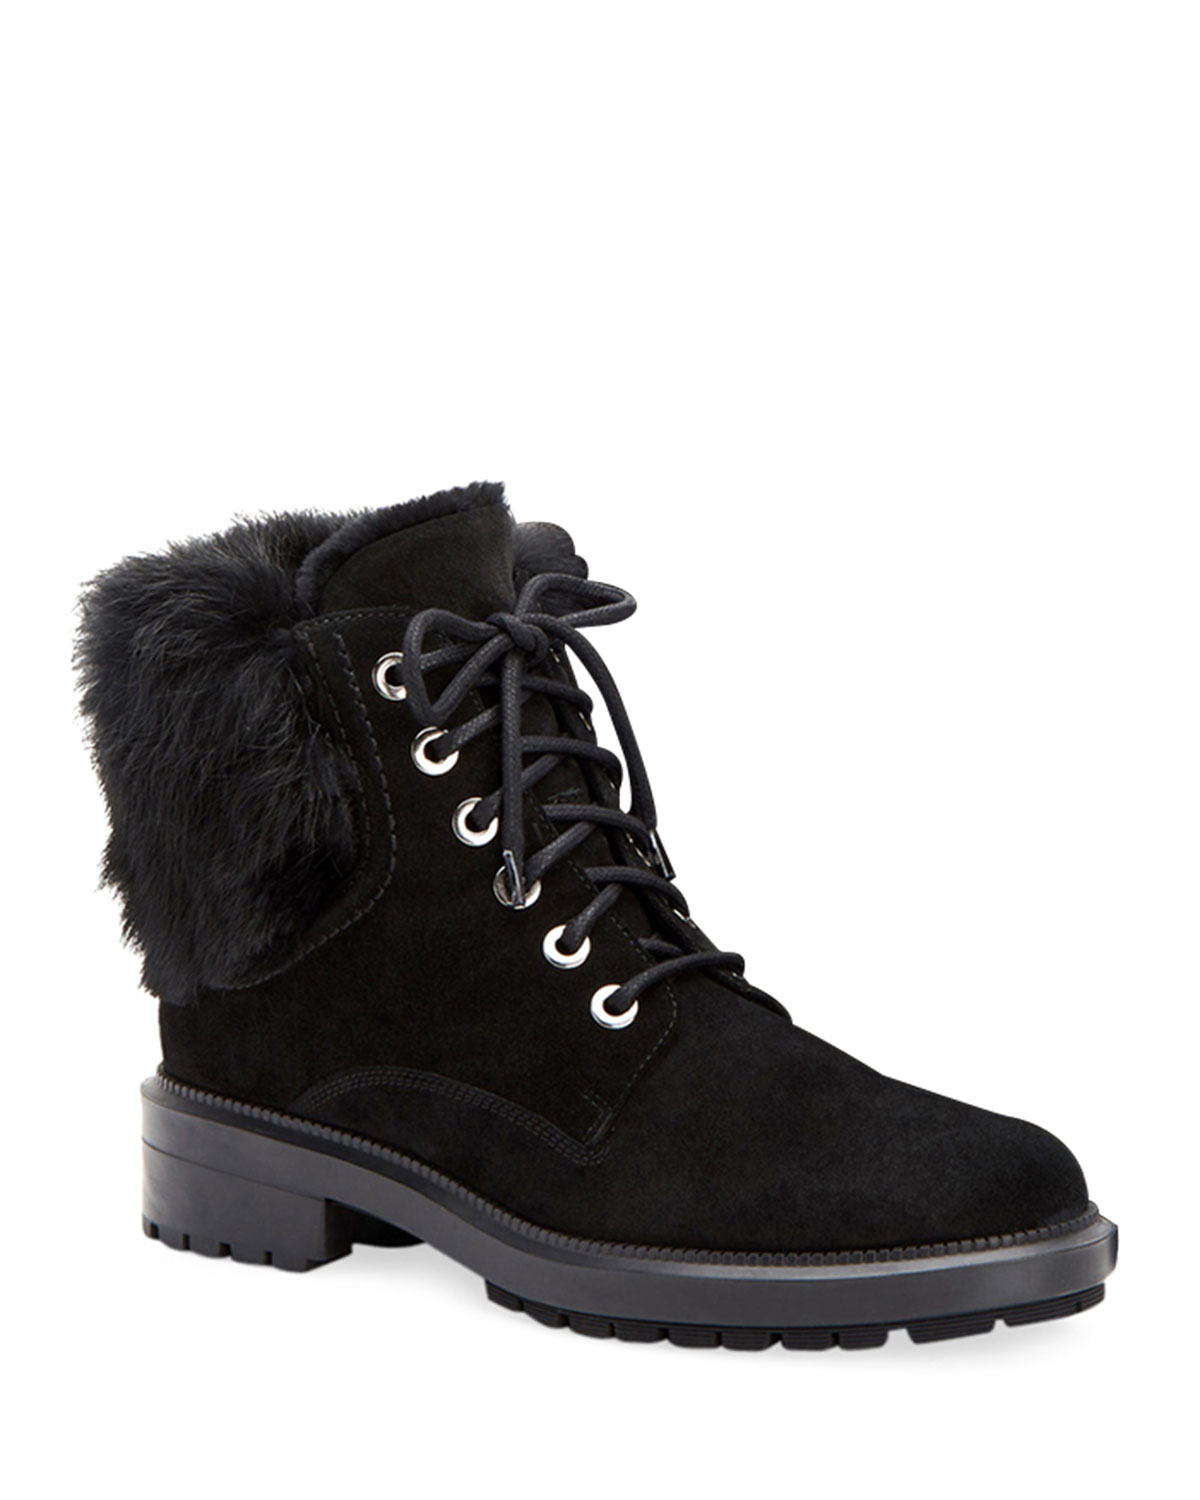 Lacy Genuine Shearling Lined Boot With Genuine Rabbit Fur Trim in Black